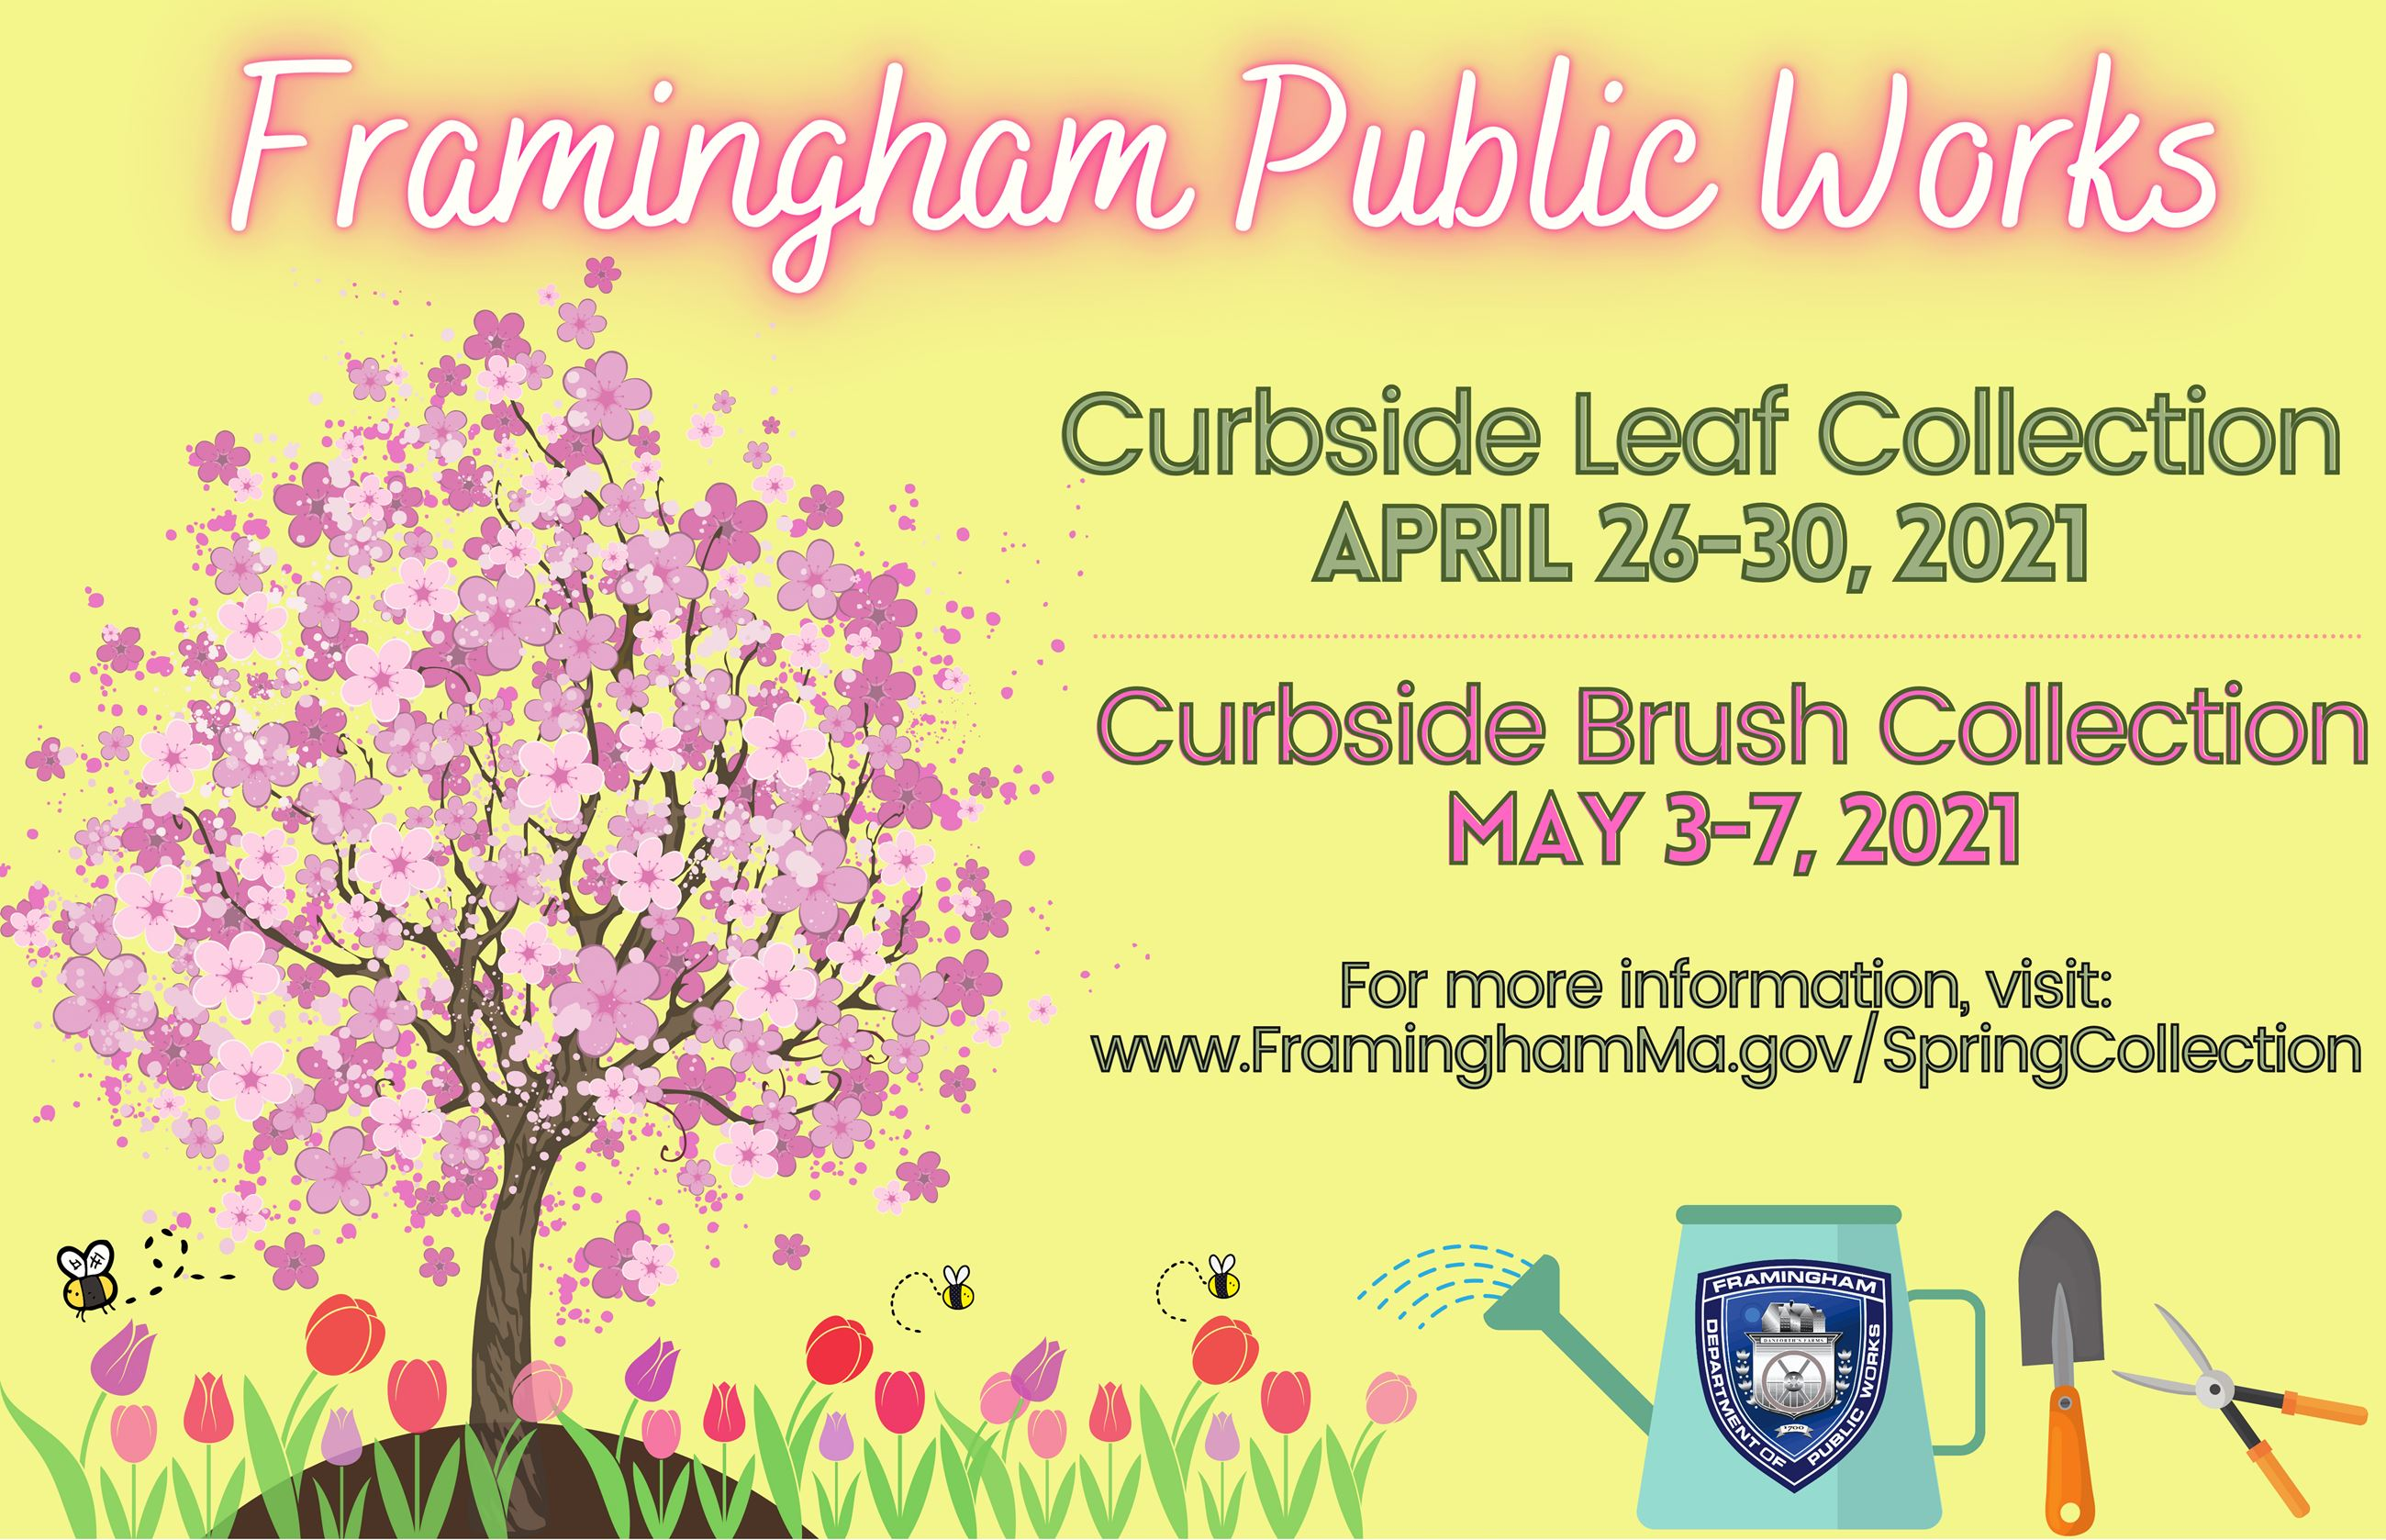 Framingham Public Works - Curbside Leaf and Brush Collection